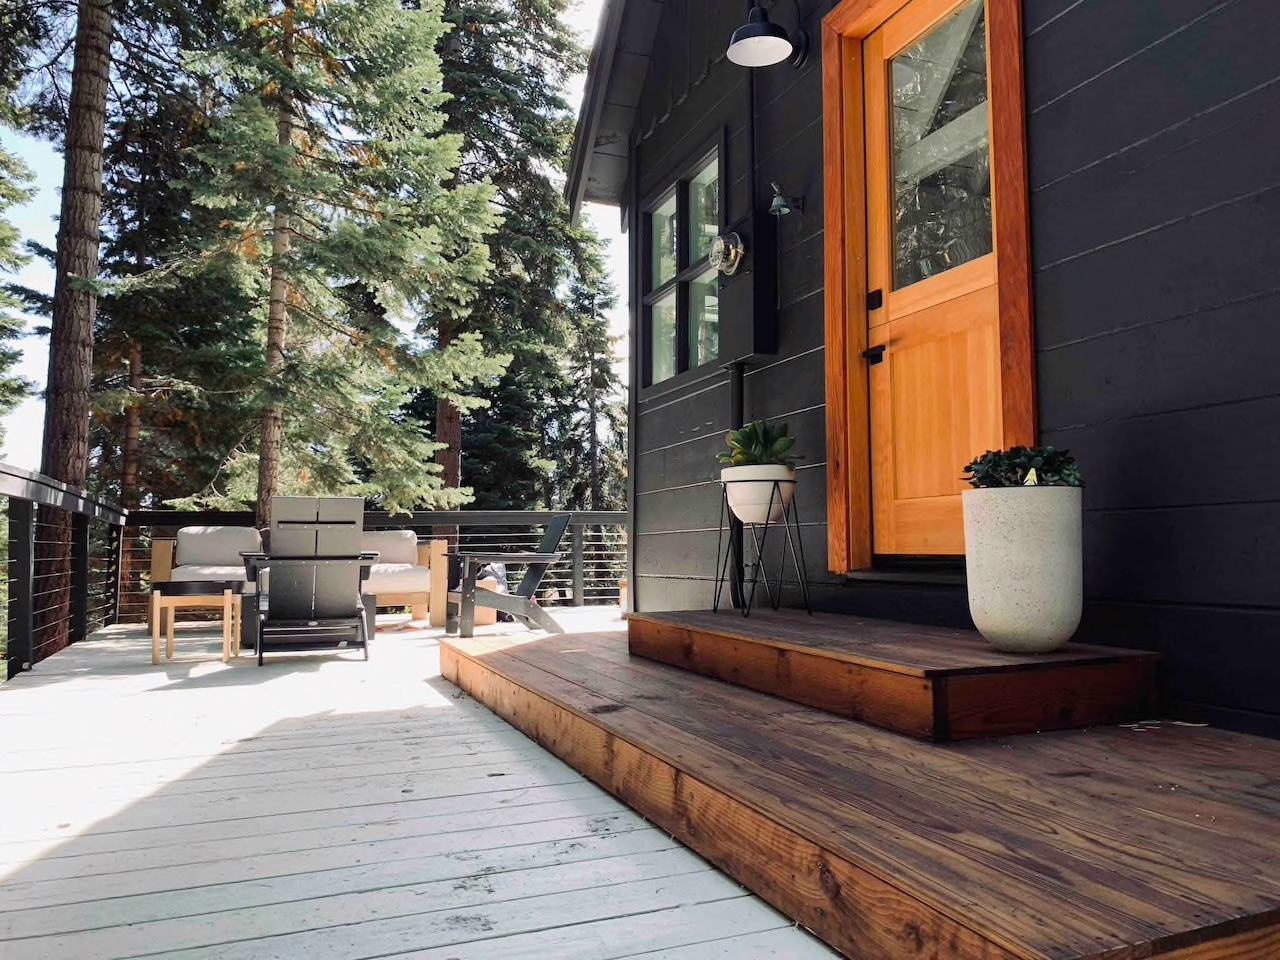 The Cubby Lake Tahoe Airbnb